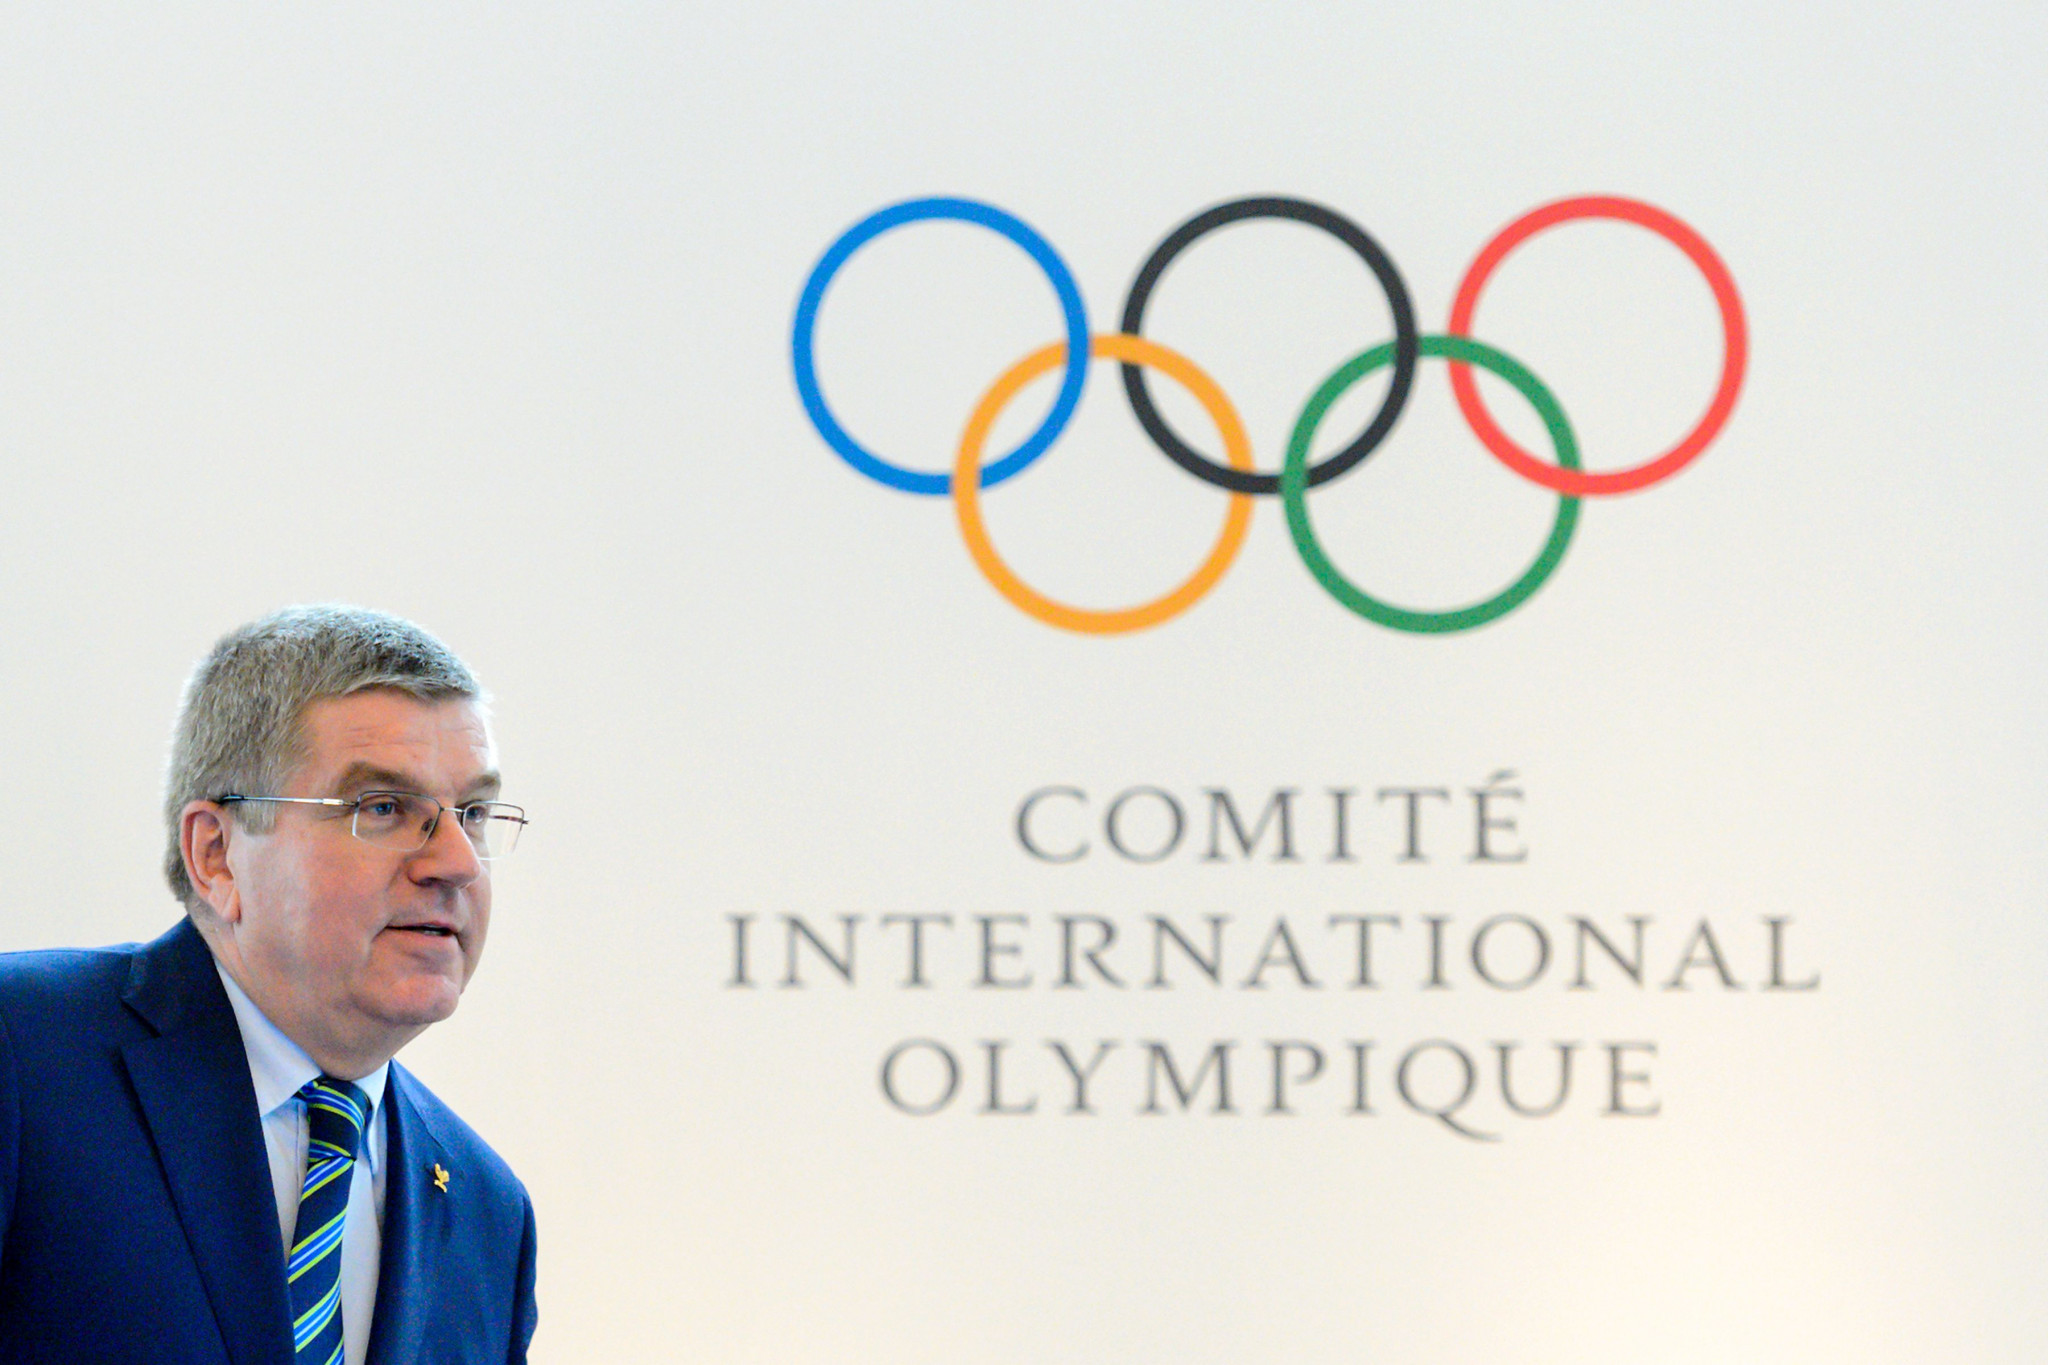 Thomas Bach, pictured speaking after an Olympic Summit in 2016, is expected to chair the meeting tomorrow ©Getty Images